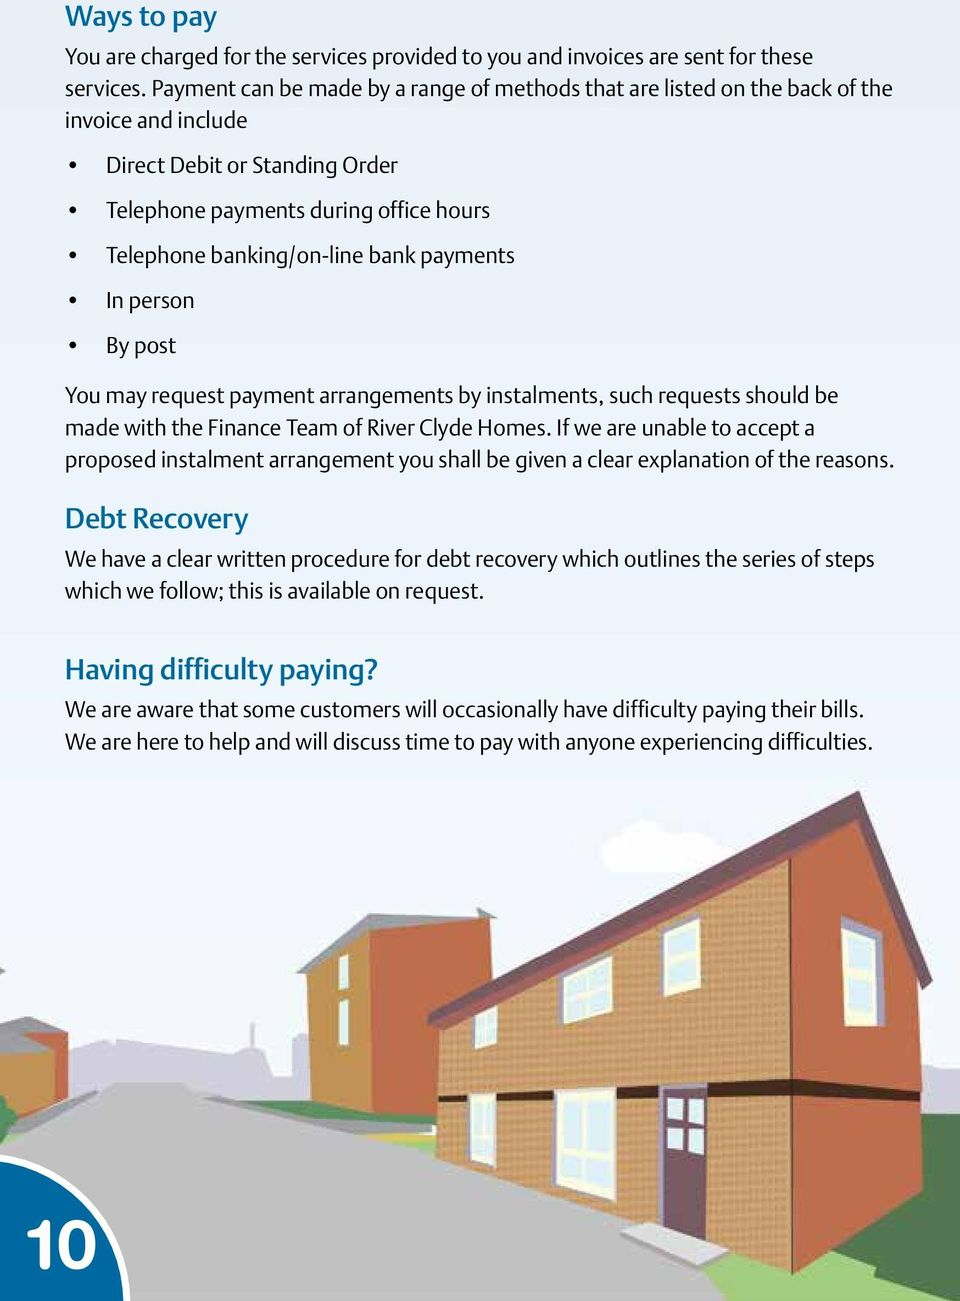 payments In person By post You may request payment arrangements by instalments, such requests should be made with the Finance Team of River Clyde Homes.